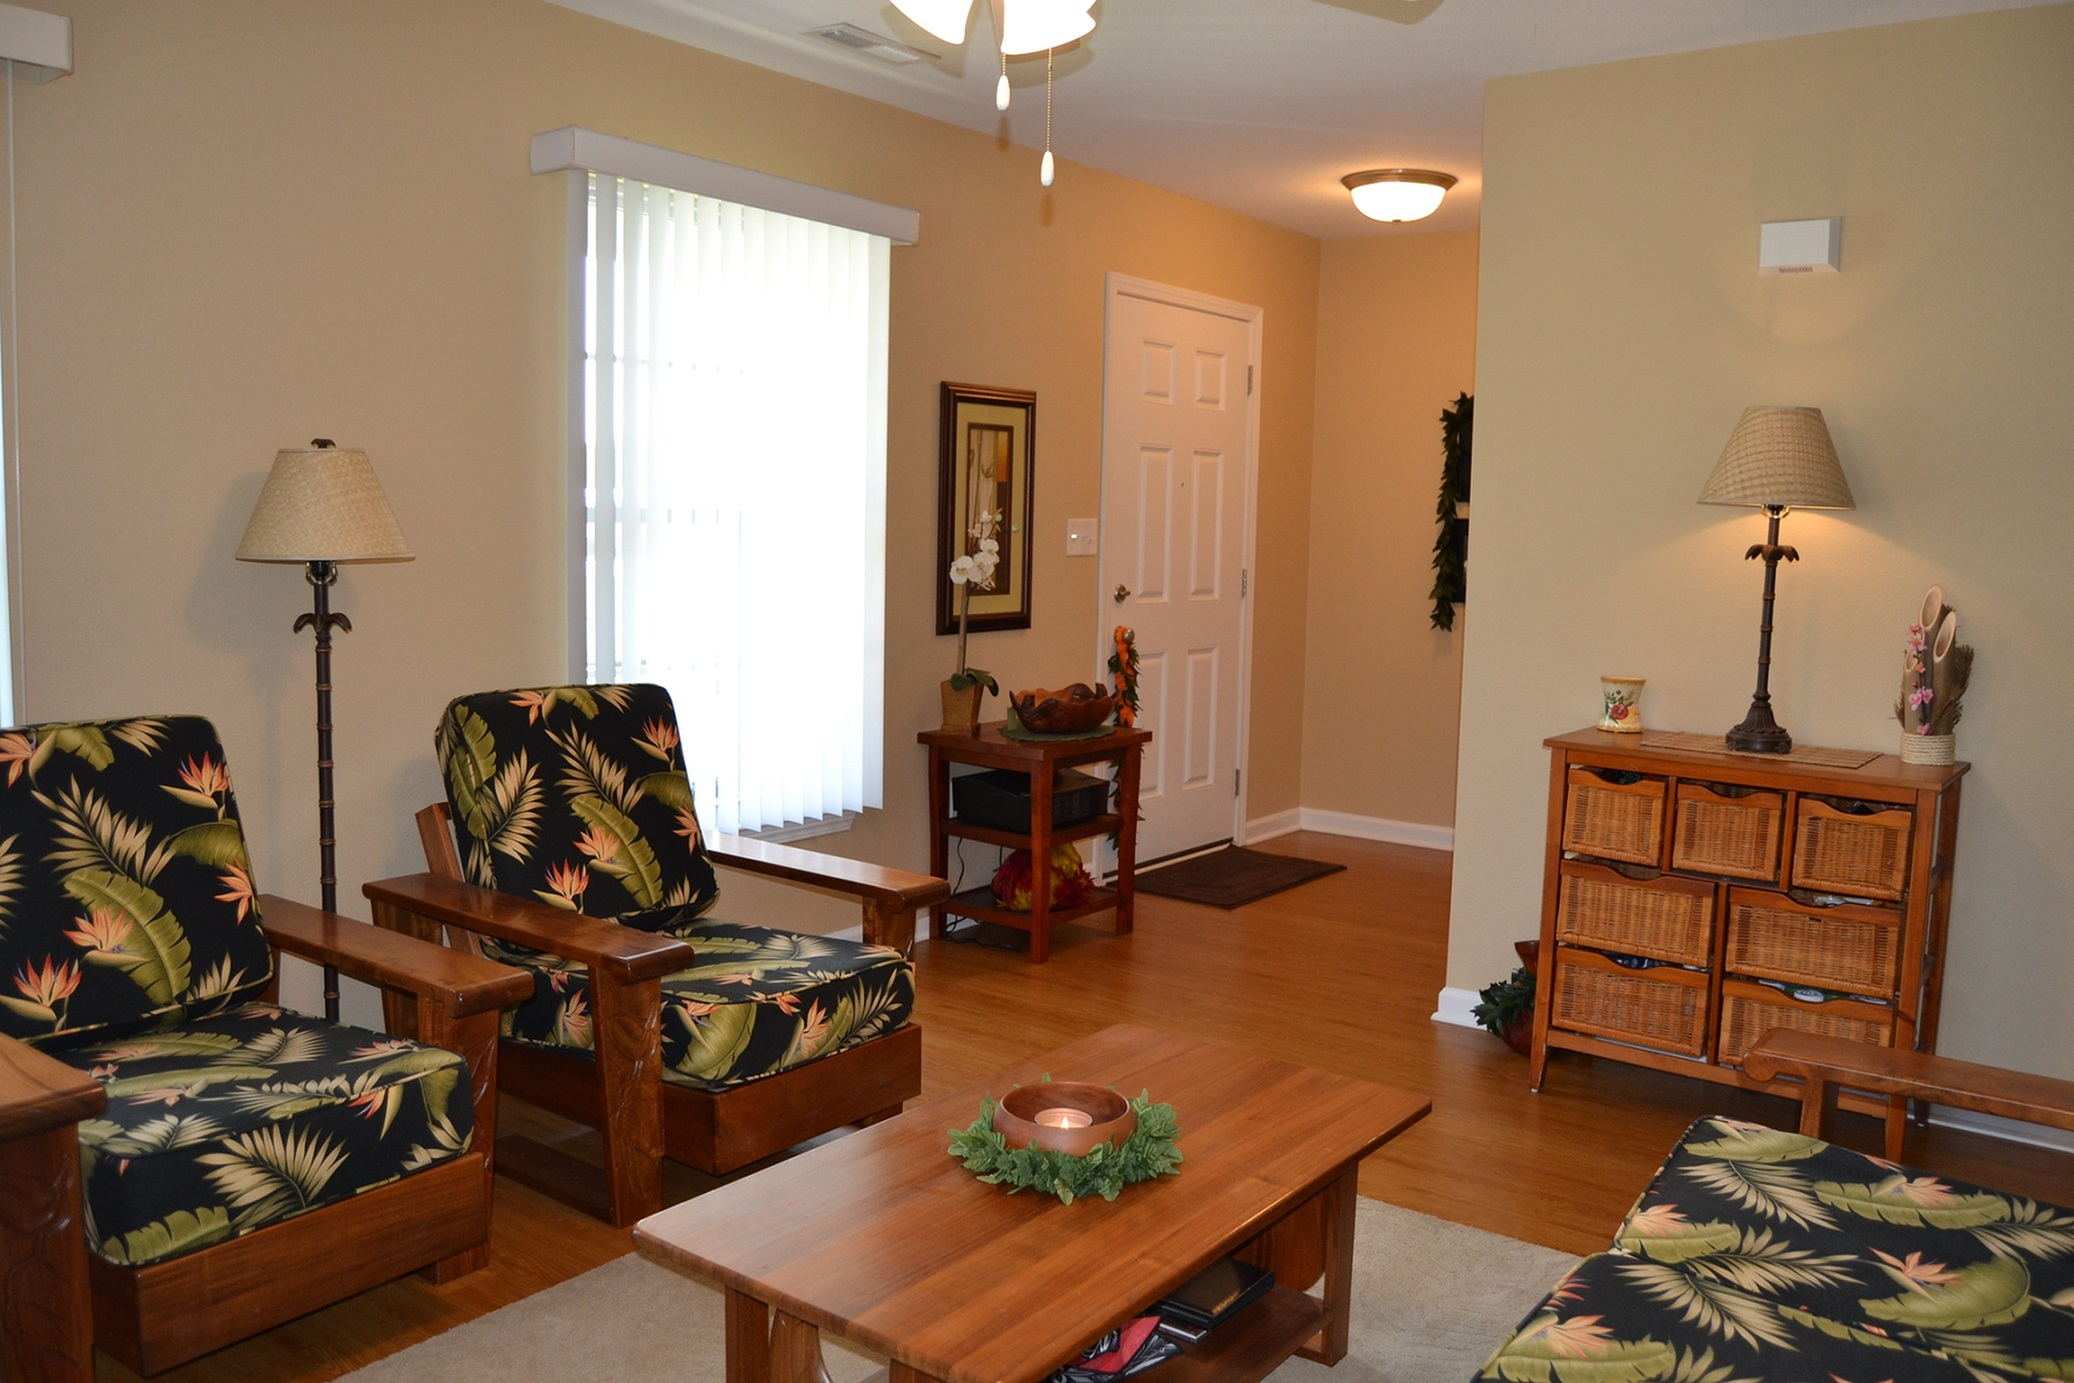 3 bed 2 5 bath apartment in fort knox ky knox hills for Flooring maple ridge